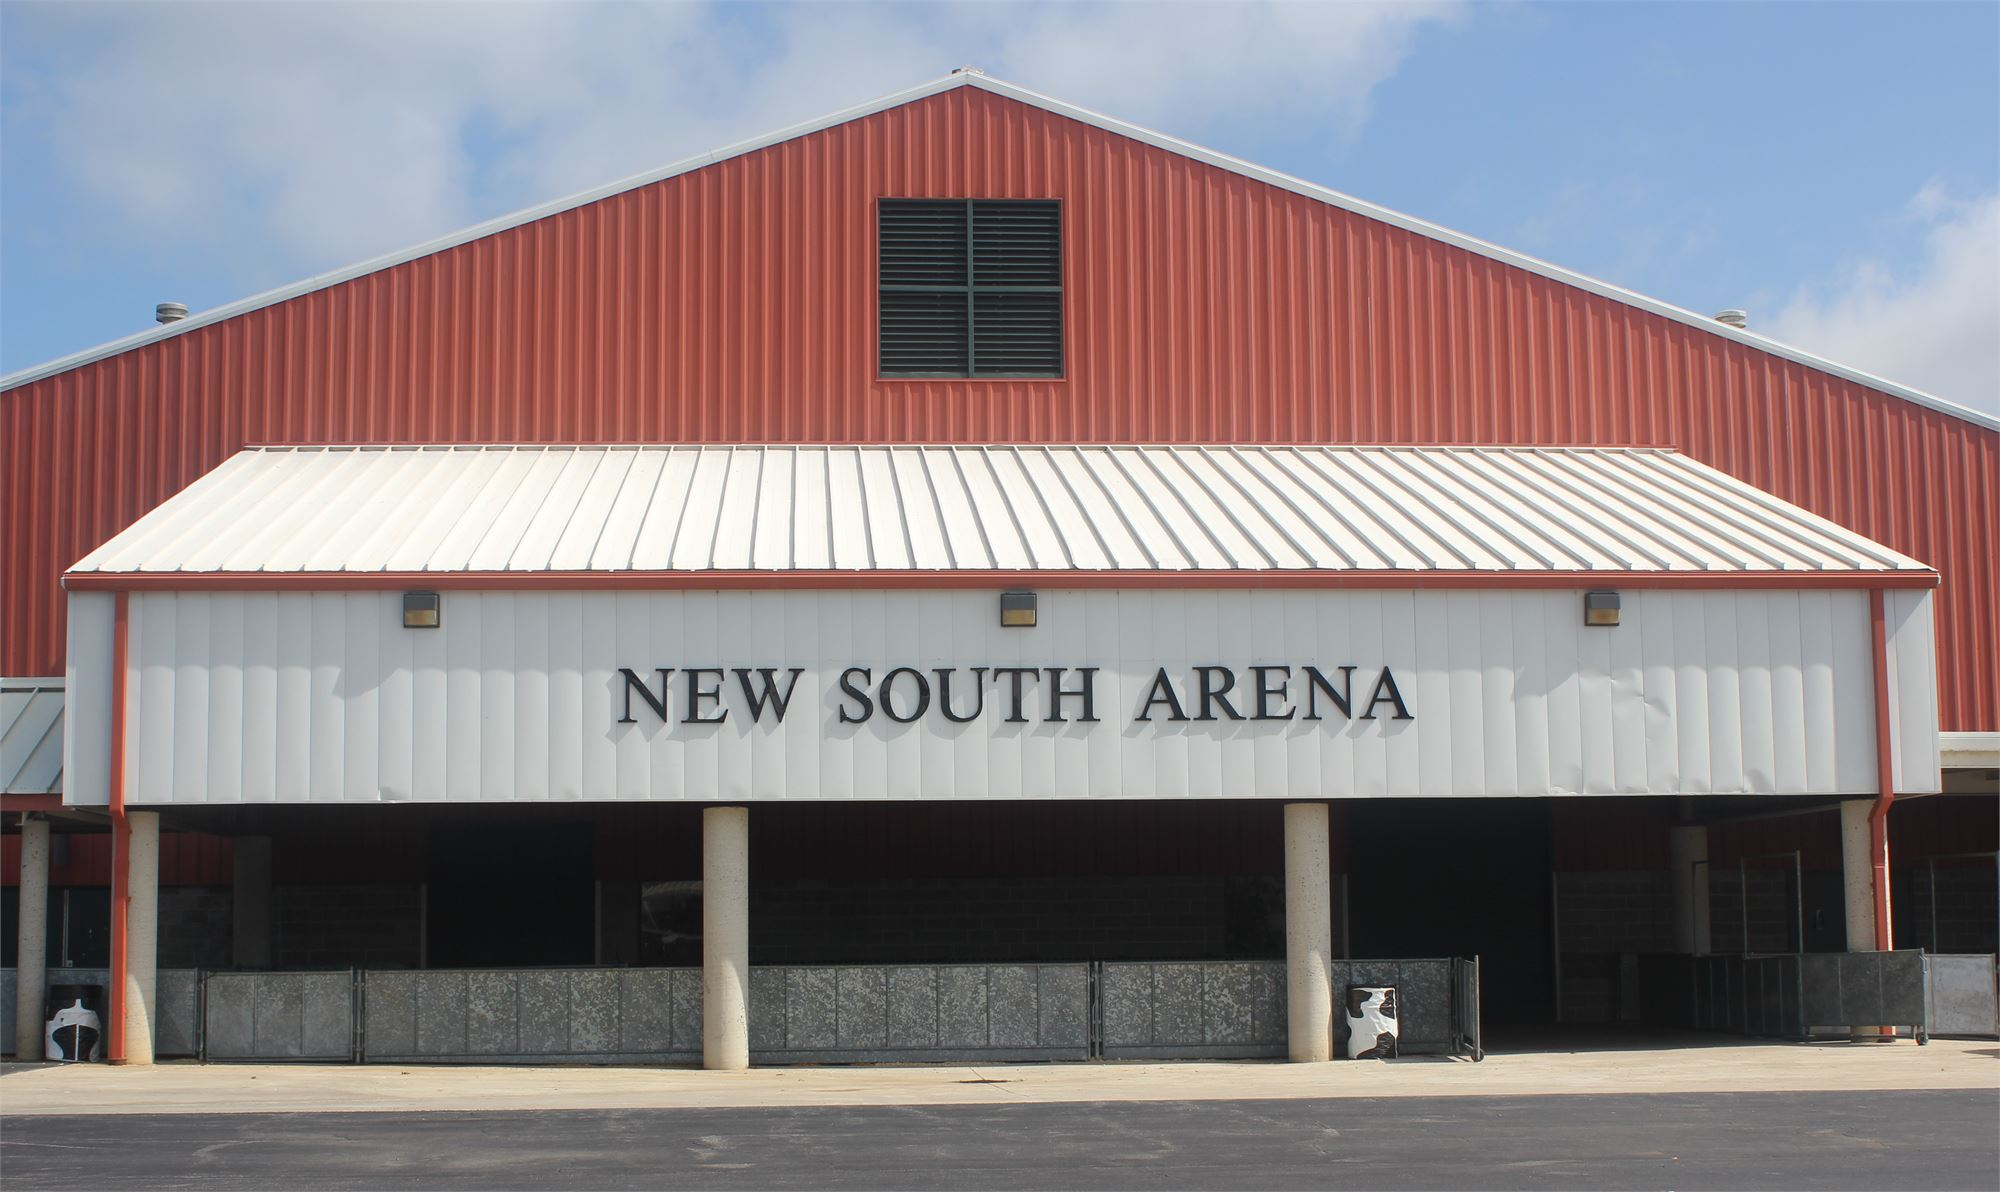 New South Arena